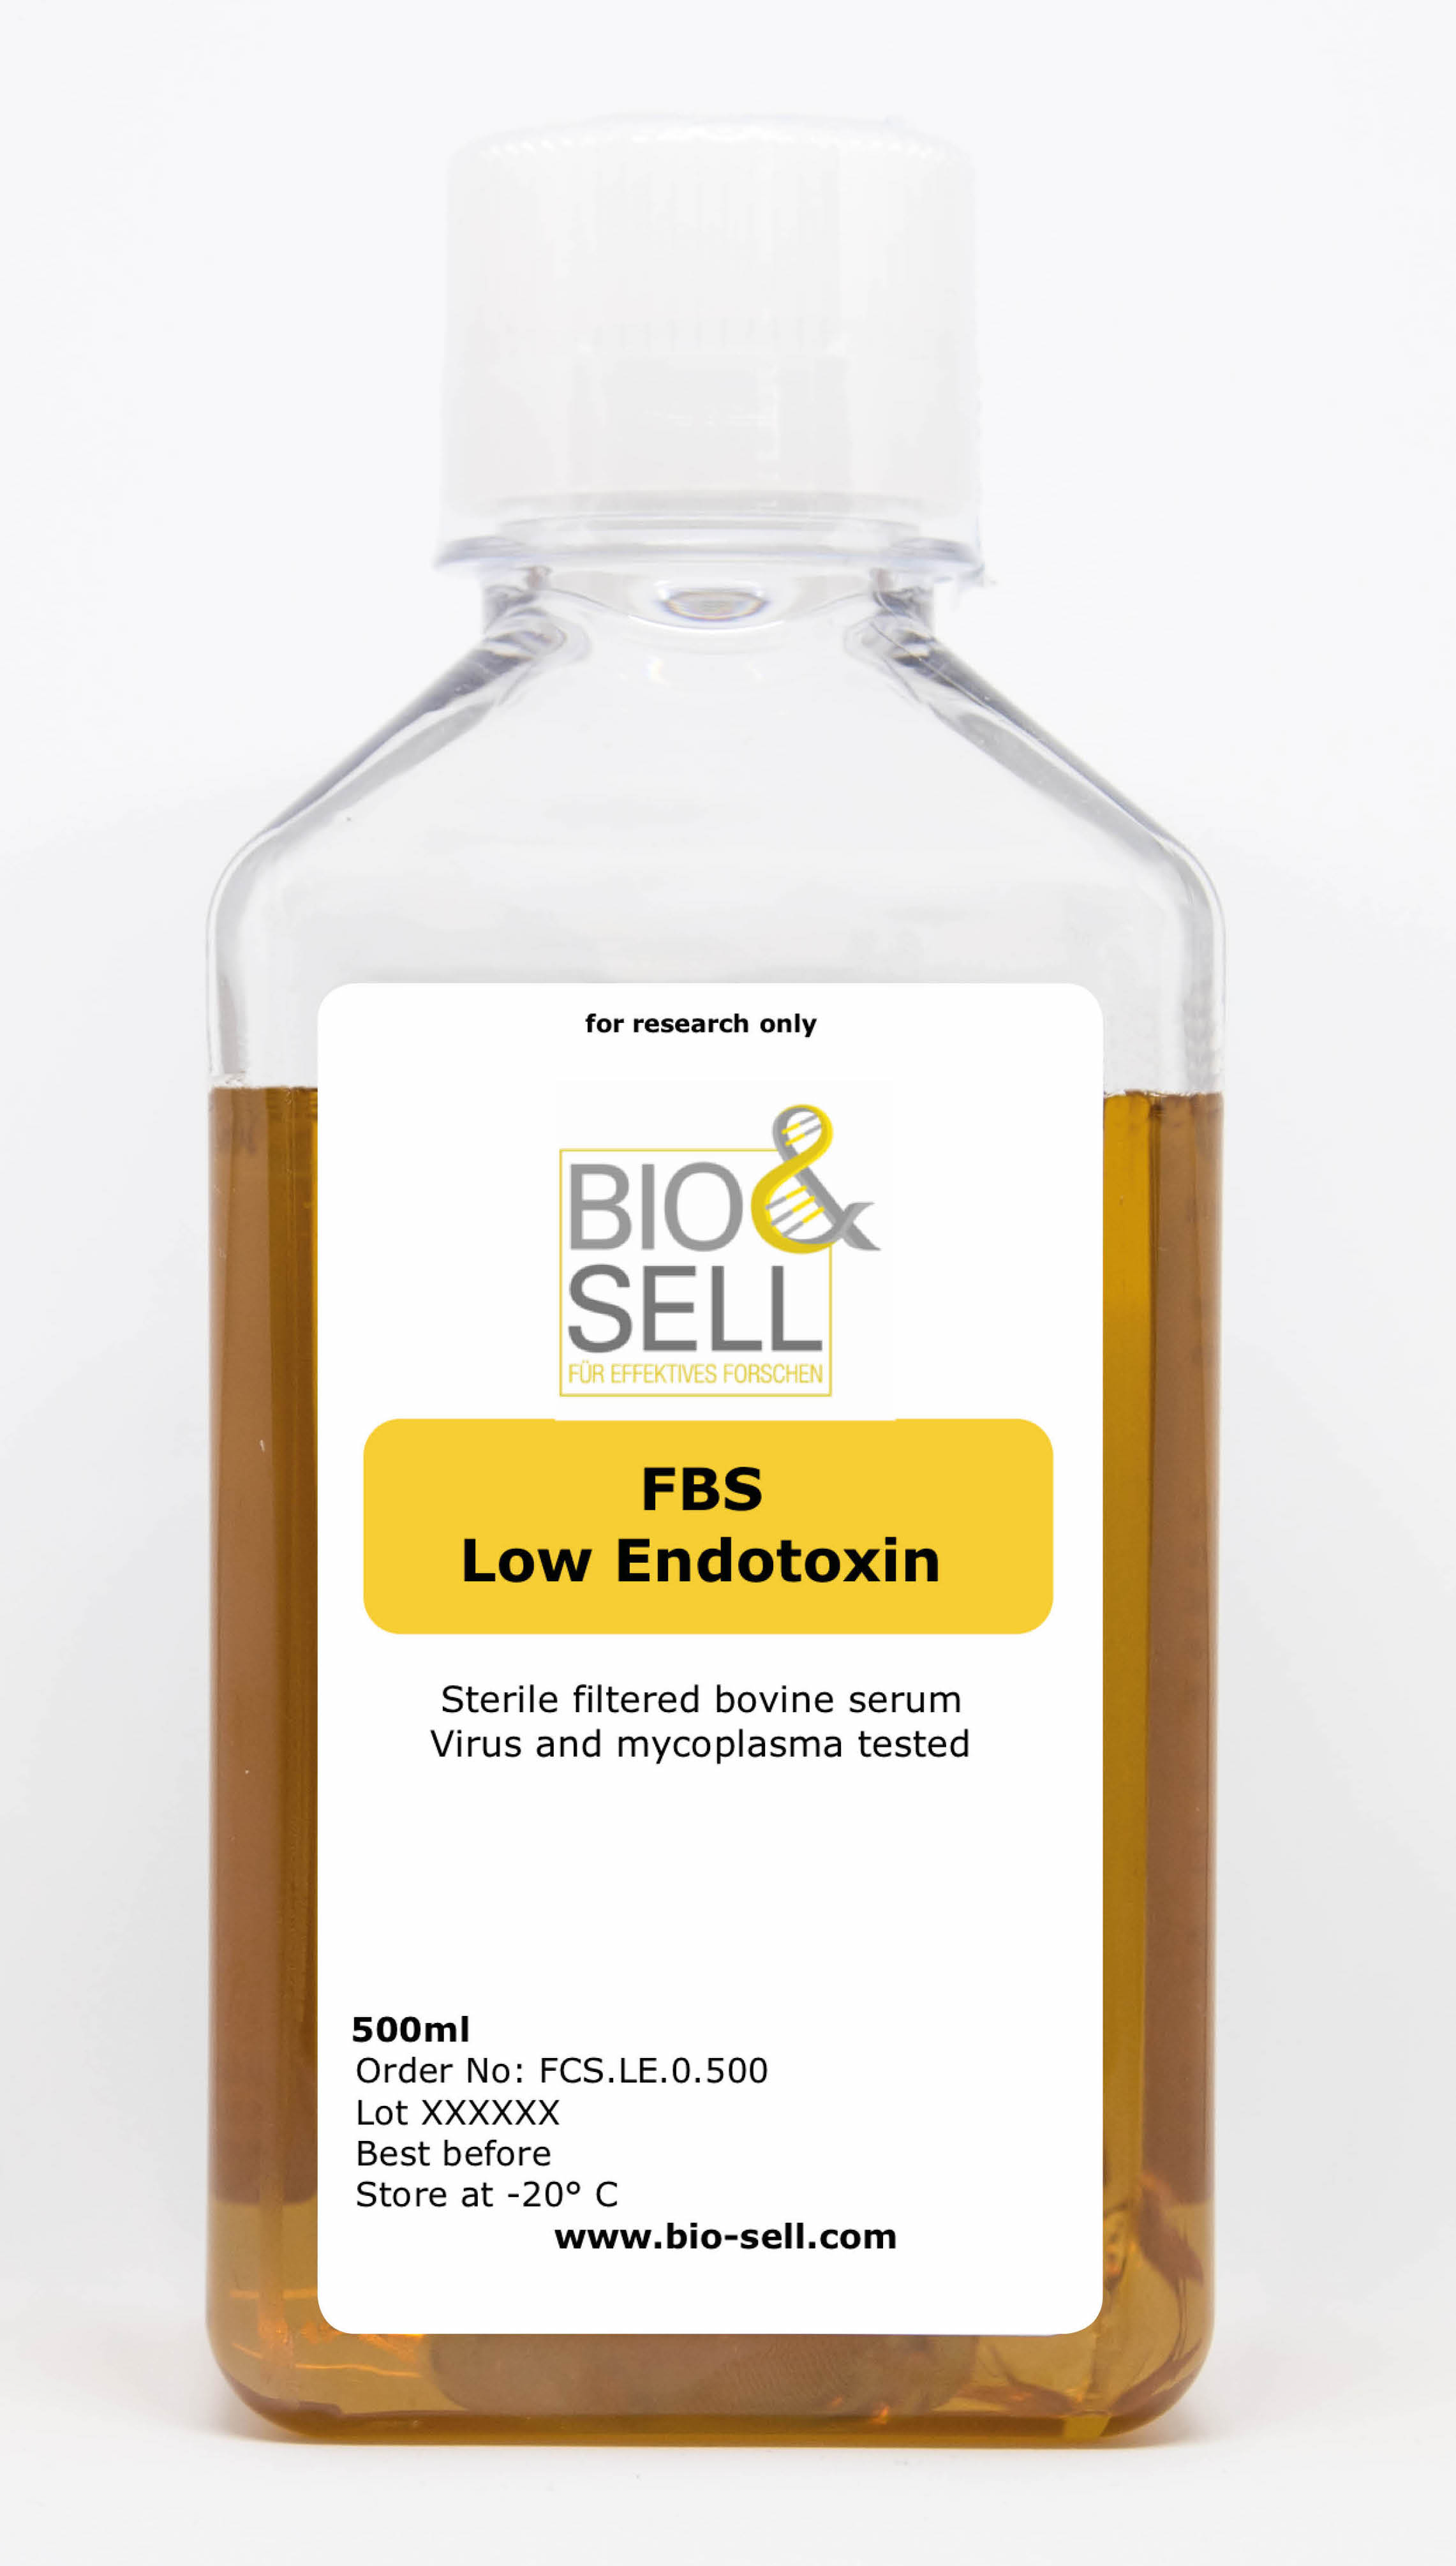 FBS Low Endotoxin engl